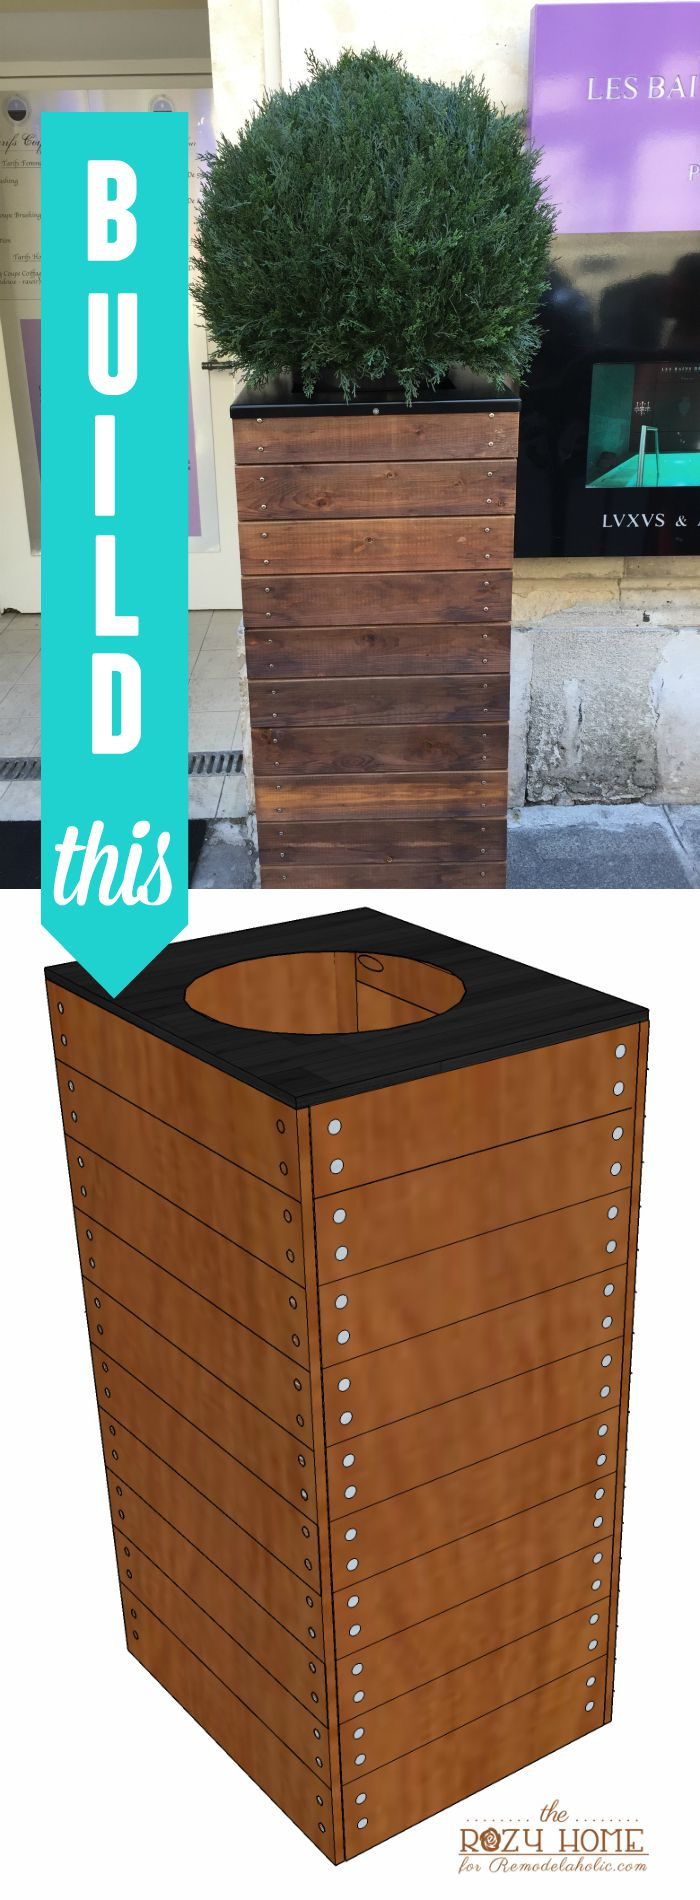 wooden planter cedar to wood part brooke chambers backyard shares ryan diy how a designs series box ashley build iiii